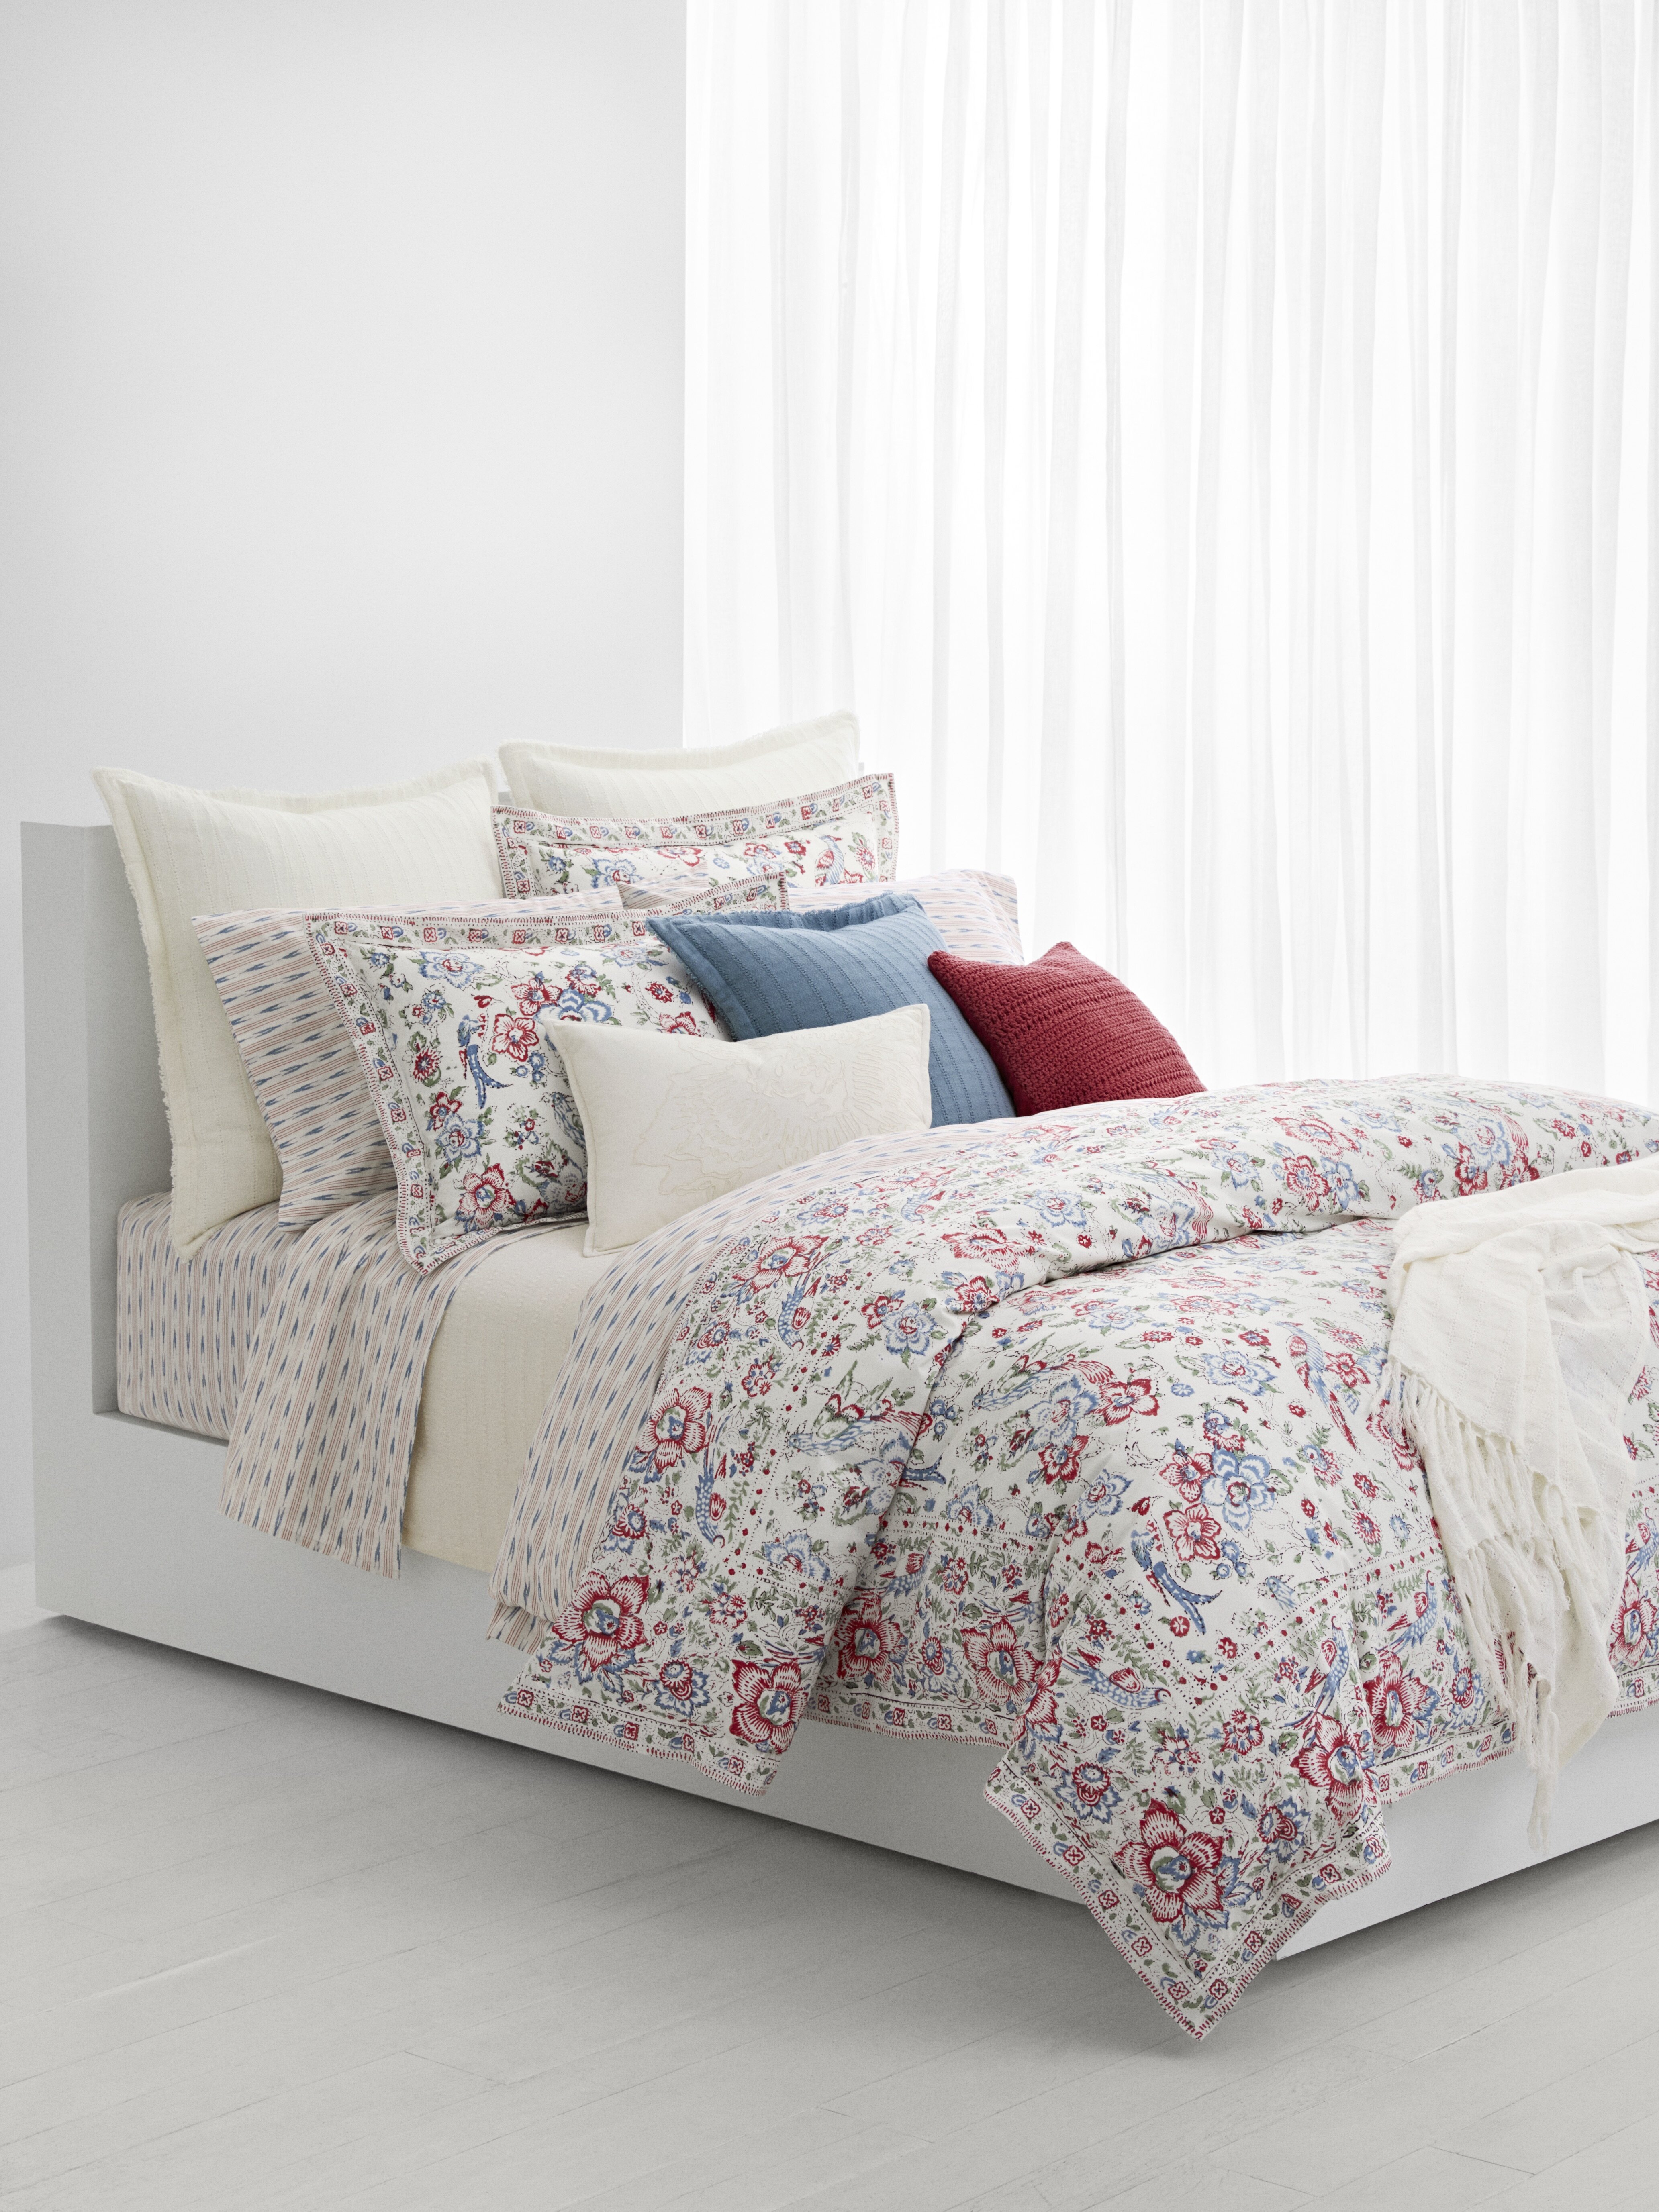 Lauren Ralph Lauren Lucie Floral Comforter Set Reviews Wayfair